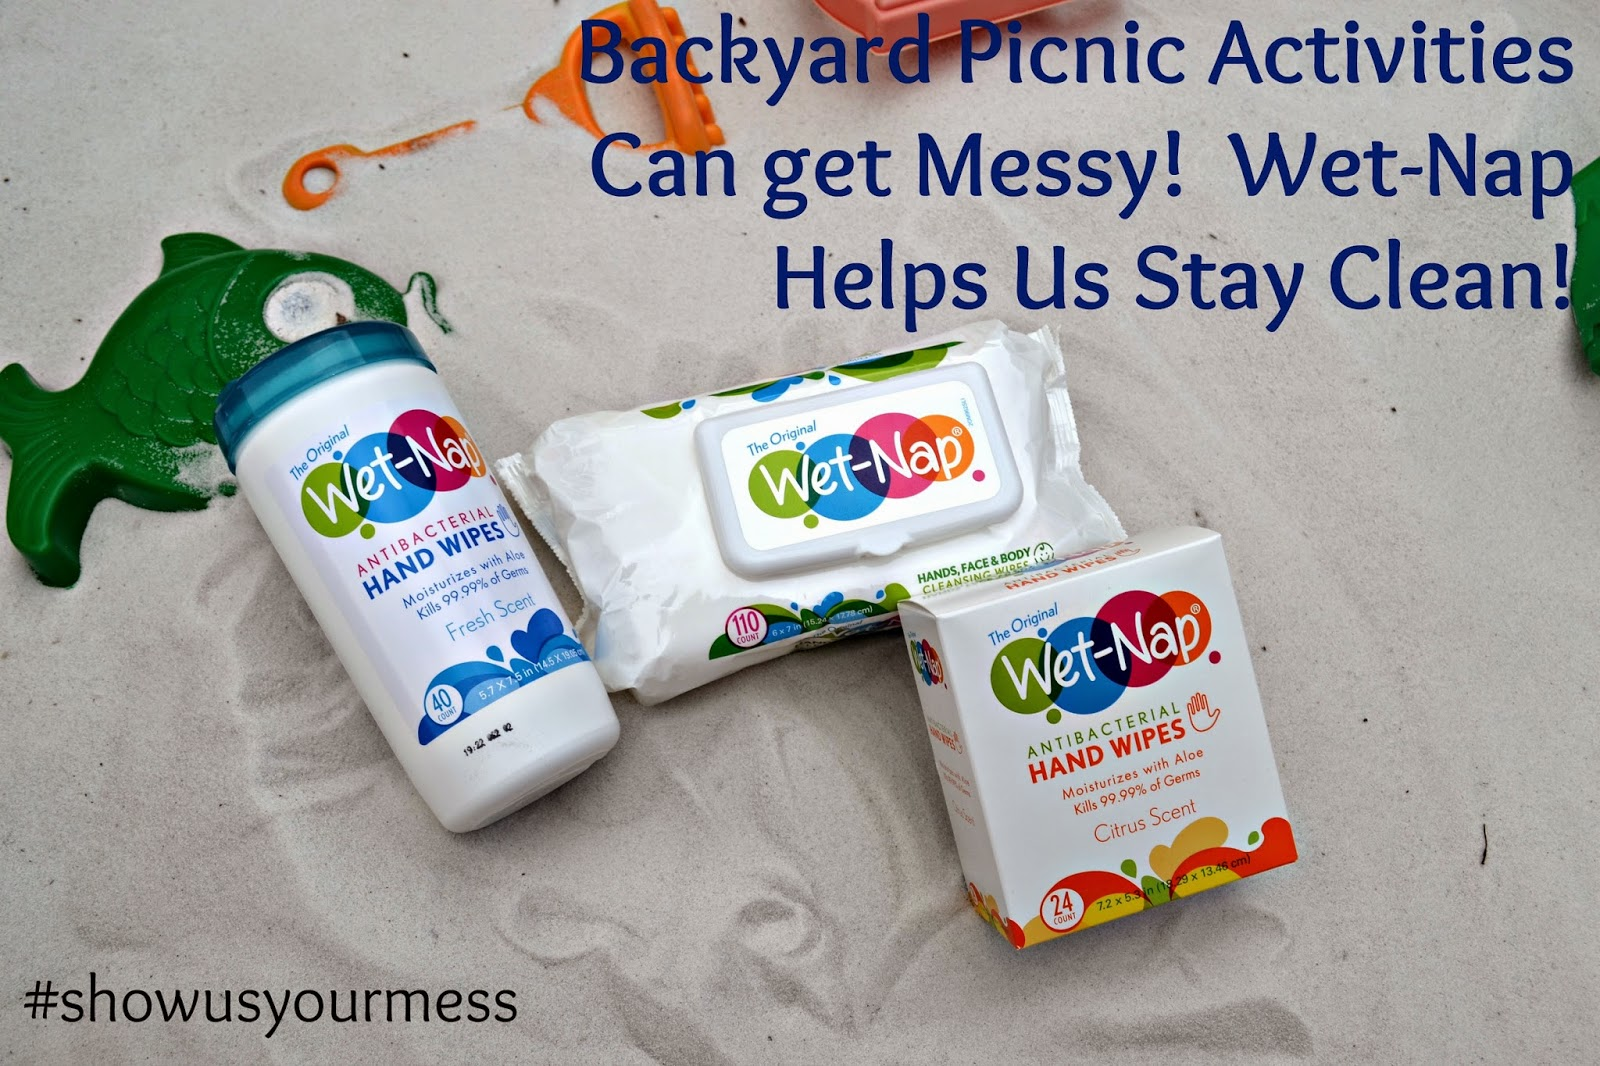 Backyard Picnic Activities with Wet-Nap  #ShowUsYourMess #PMedia #ad.  Wet-Nap Antibacterial Hand Wipes.